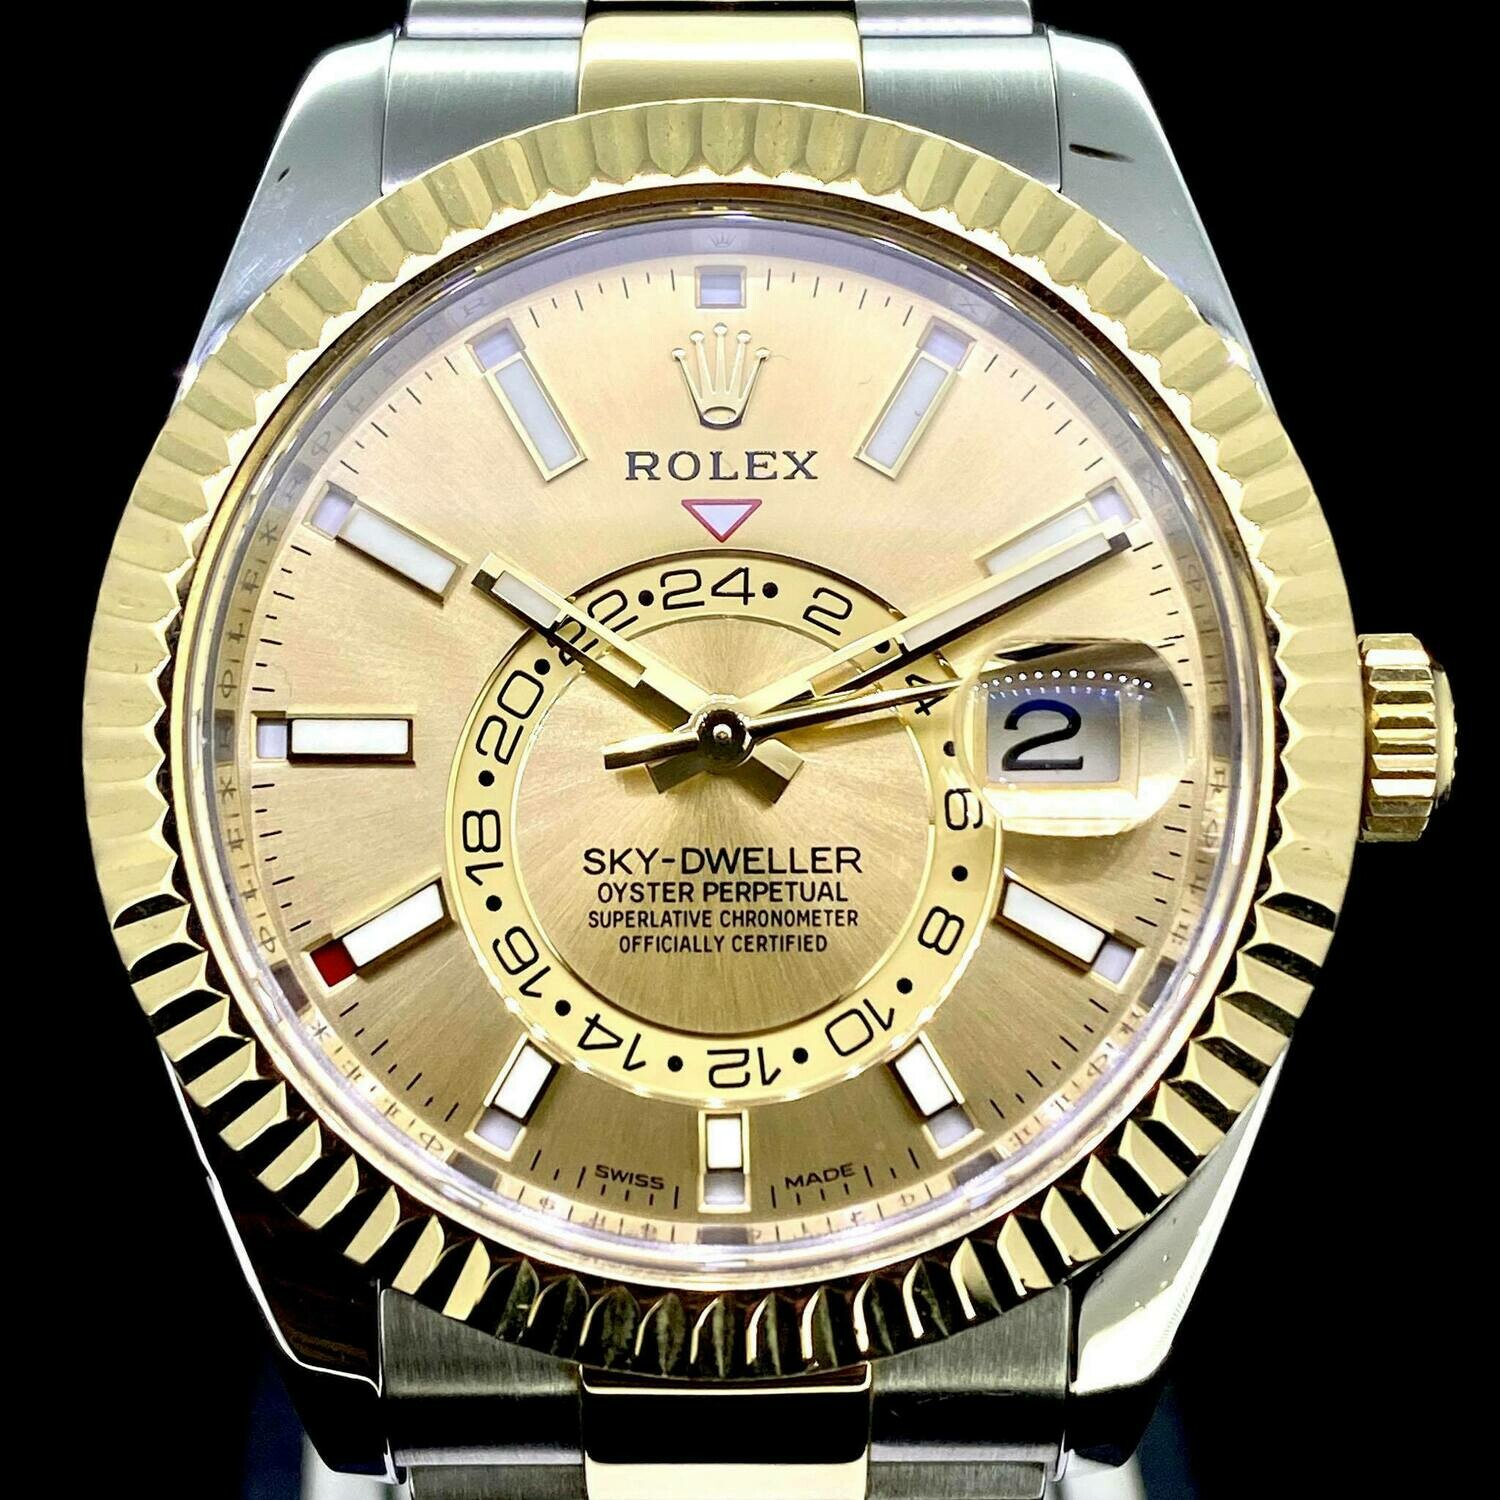 Rolex Sky-Dweller 42MM Yellow Gold/Steel Watch Champange Dial Very Mint Condition Box Only